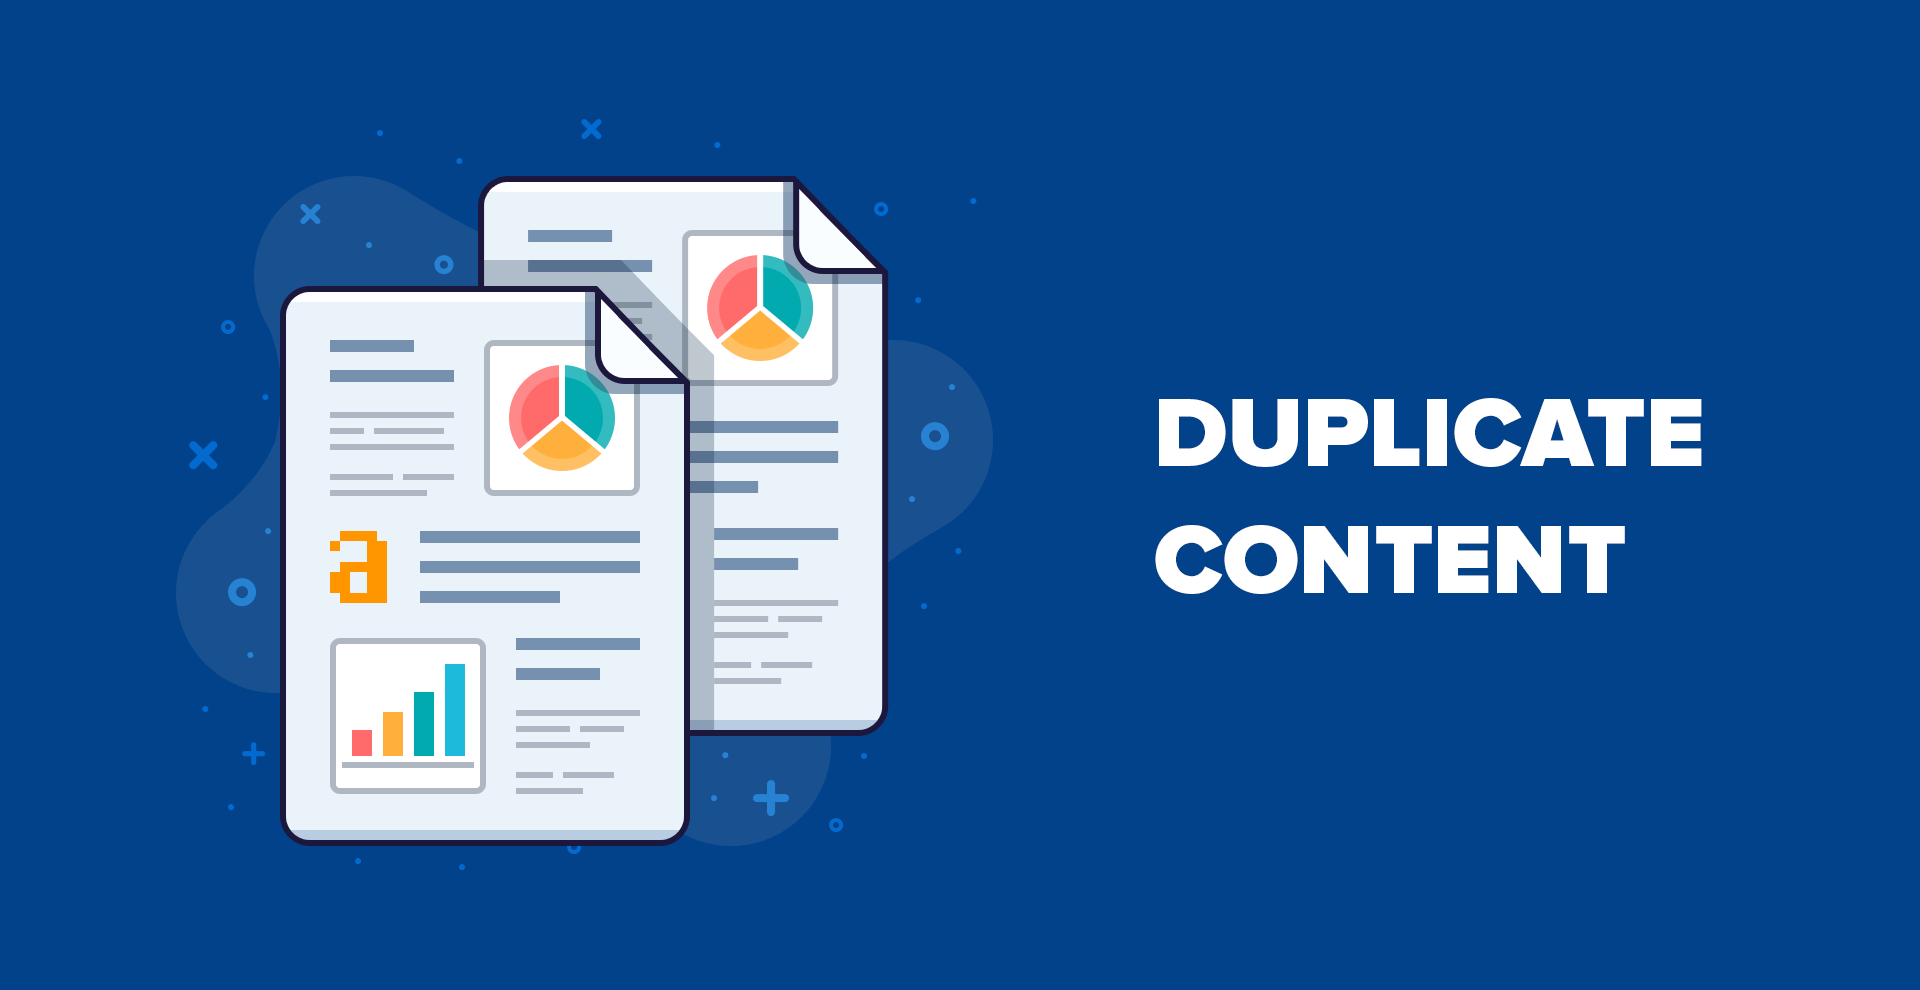 Find Duplicate Content on your Site